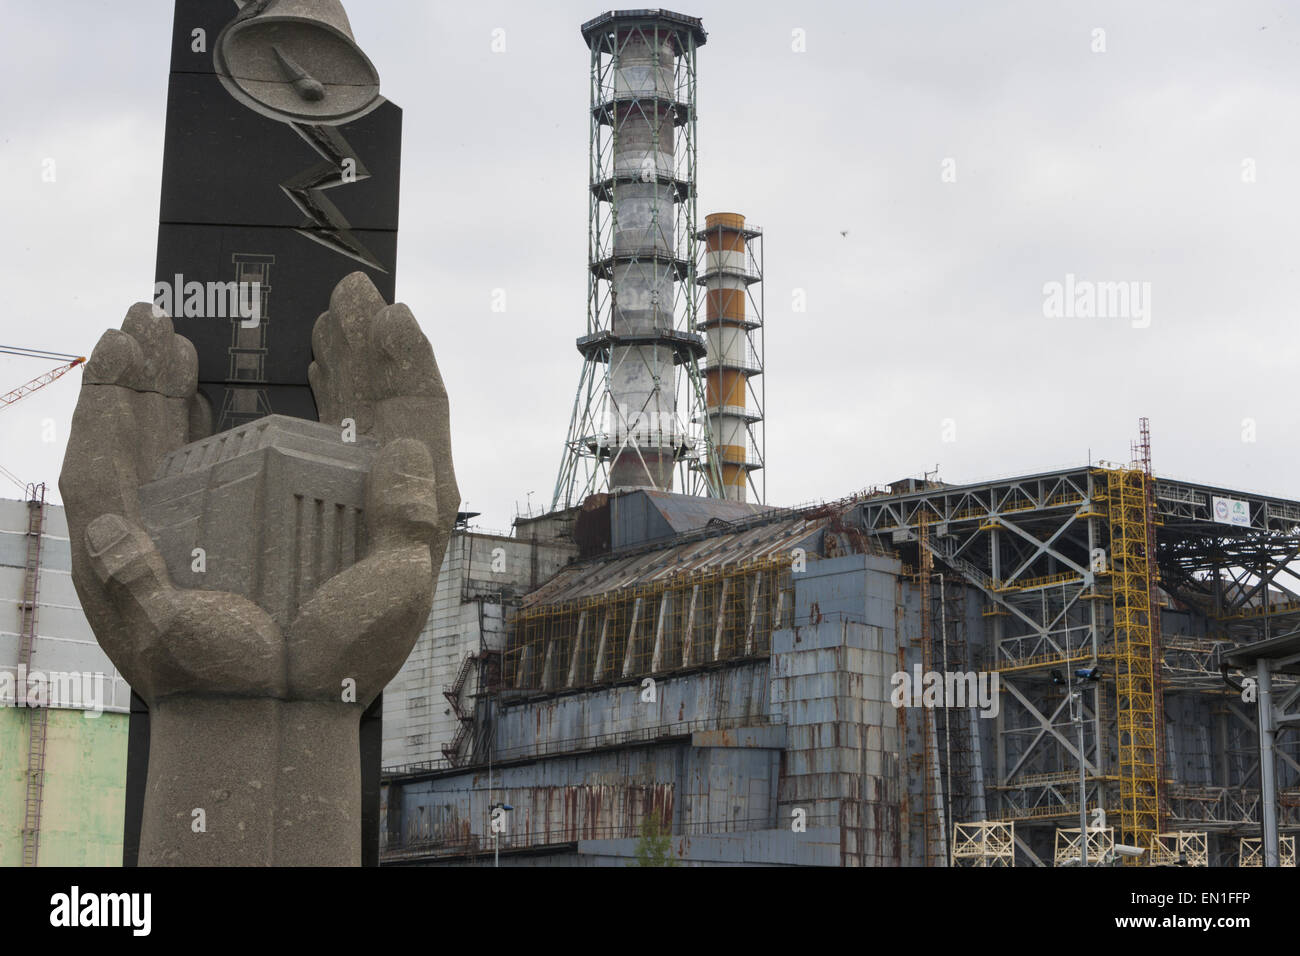 Ukraine. 12th June, 2013. Memorial sculpture close to nuclear reactor number 4 remember the dead workers in Chernobyl - Stock Image